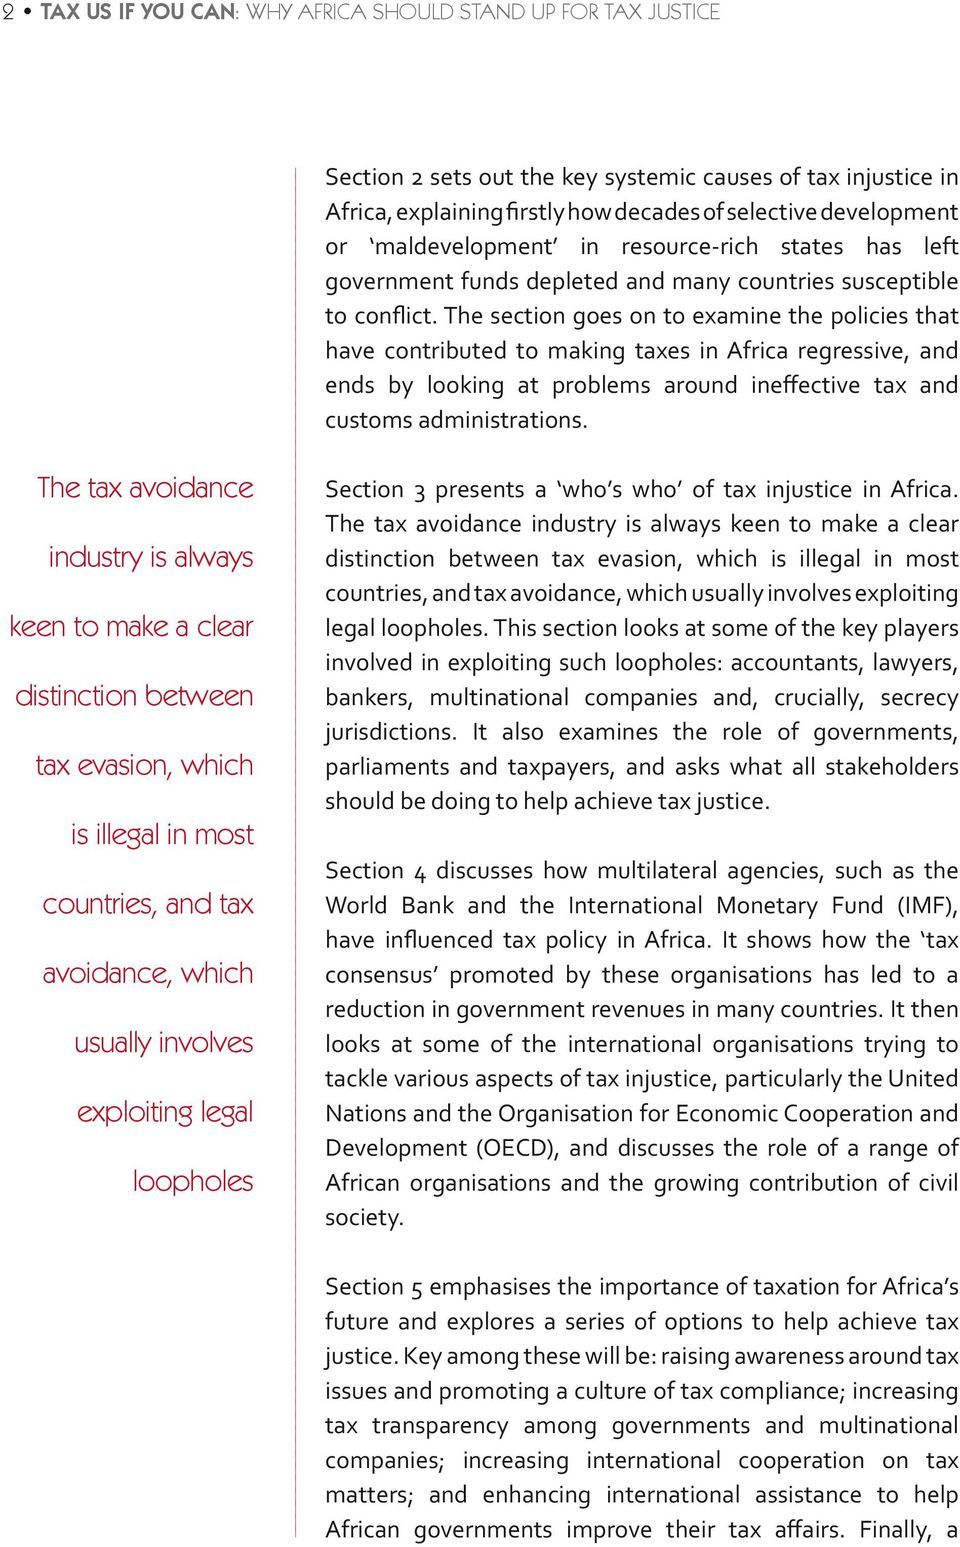 The section goes on to examine the policies that have contributed to making taxes in Africa regressive, and ends by looking at problems around ineffective tax and customs administrations.